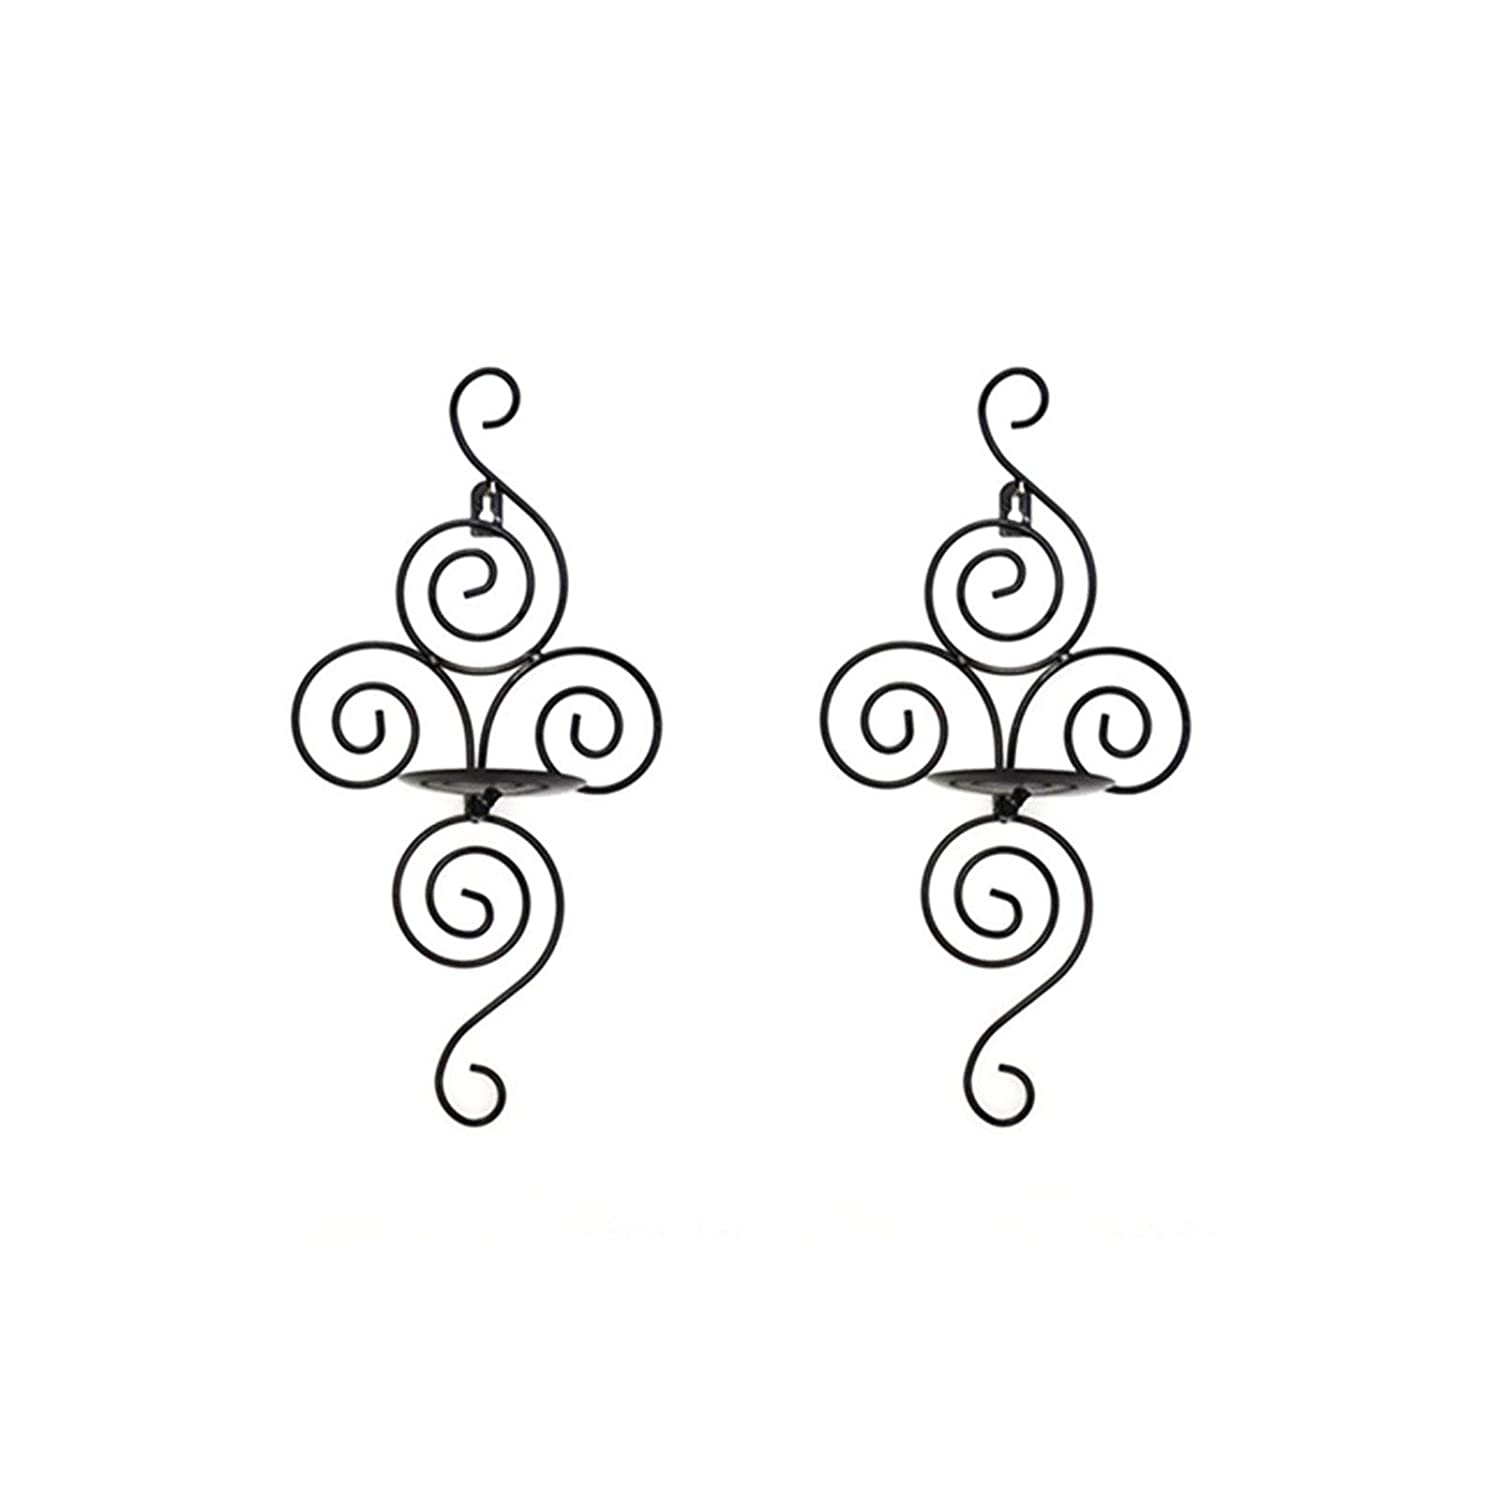 SWM 32402 Scrollwork Candle Sconces